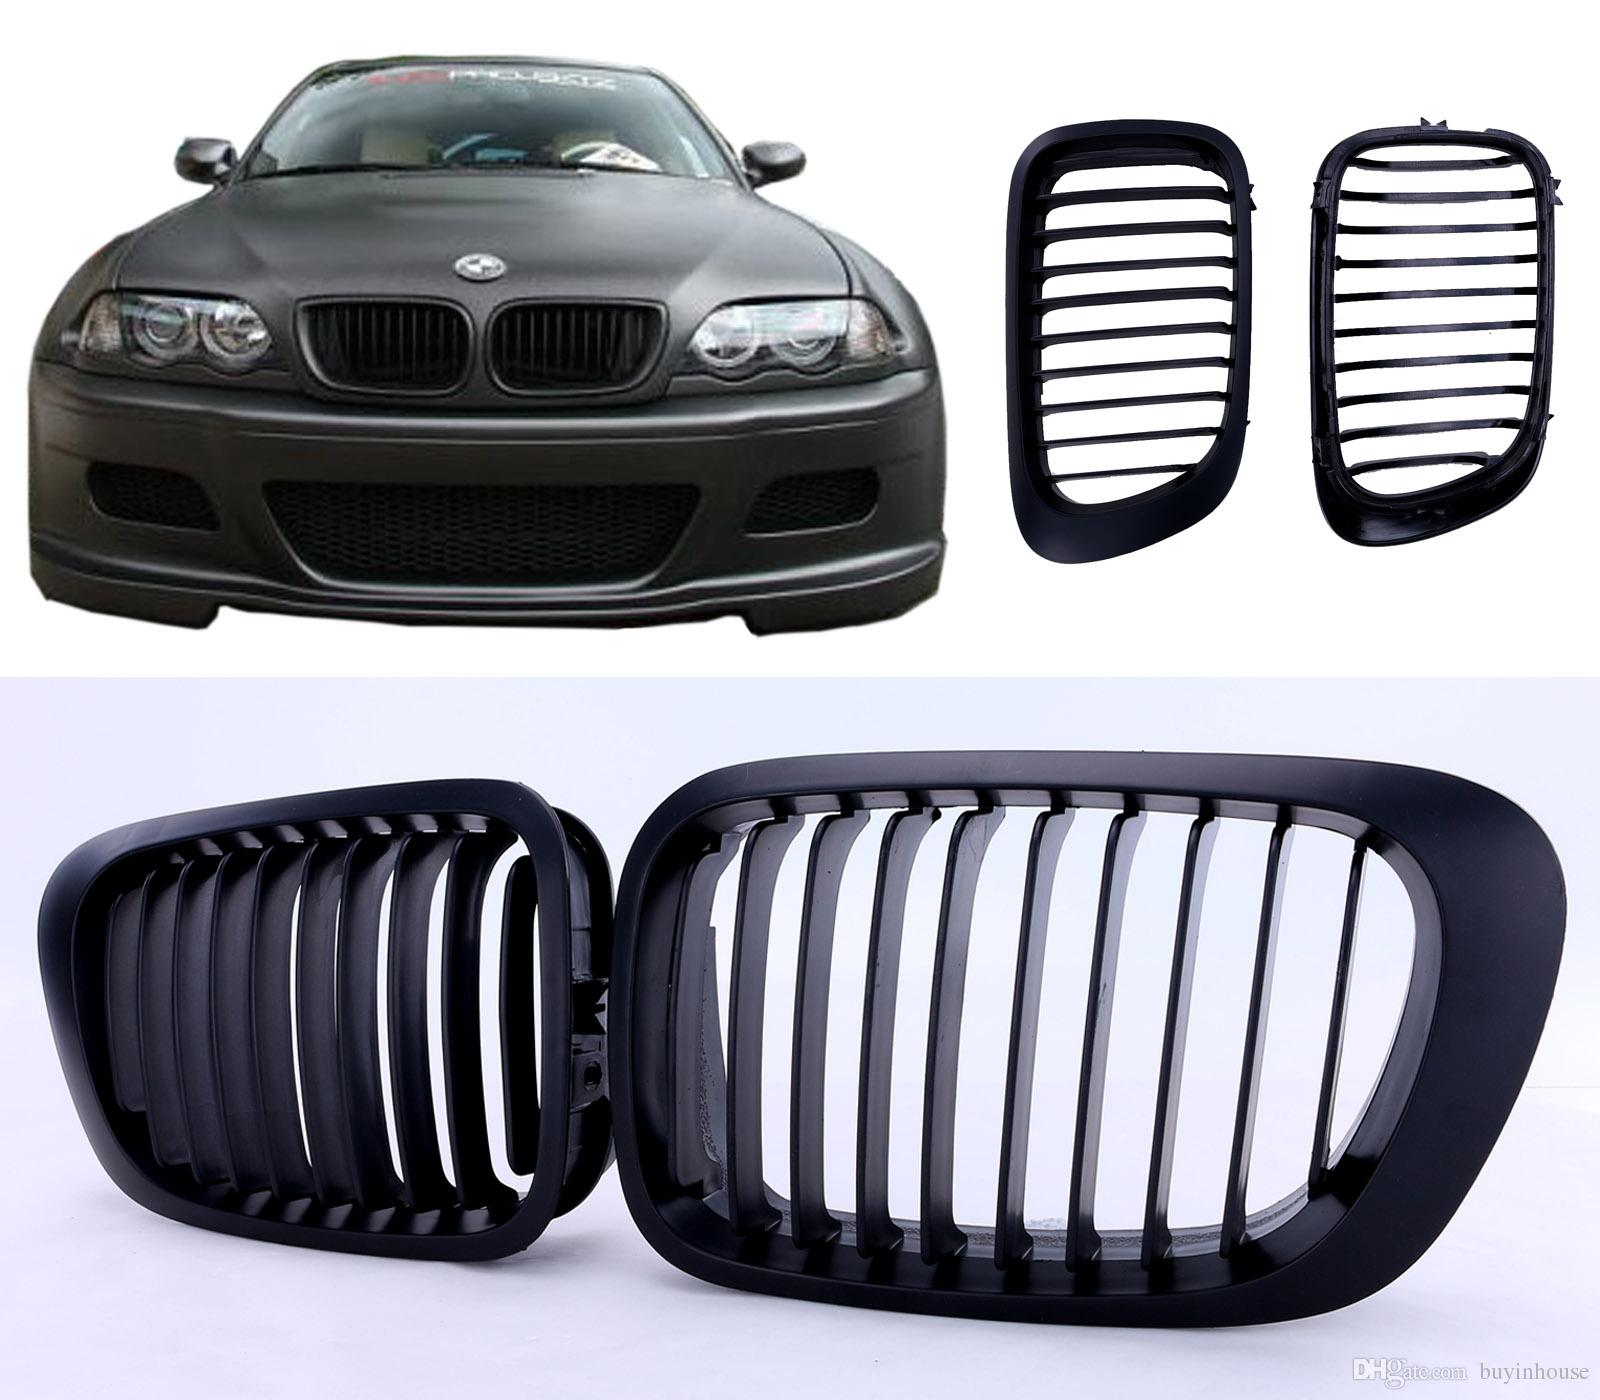 attached sport images tips showthread m bmw attachment removal forums performance grill